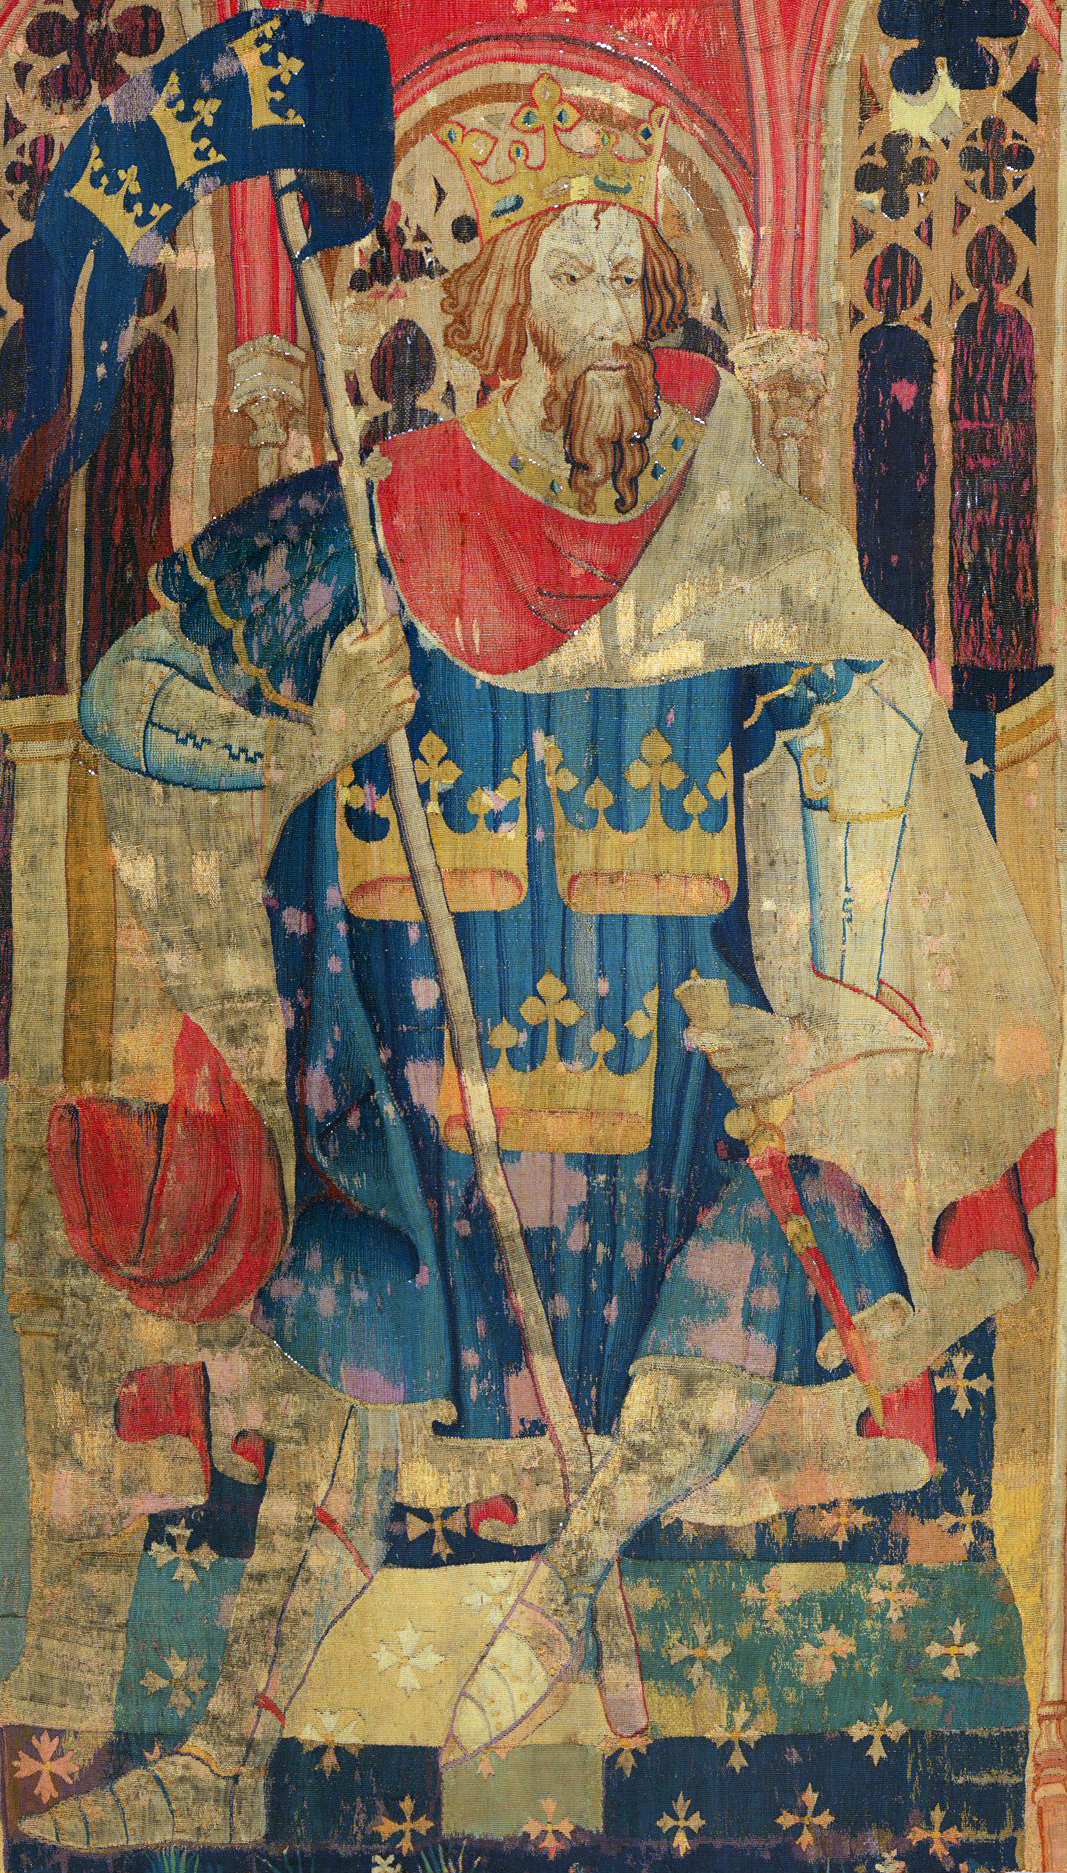 Tapestry depicting King Arthur sitting on a throne, holding a banner.